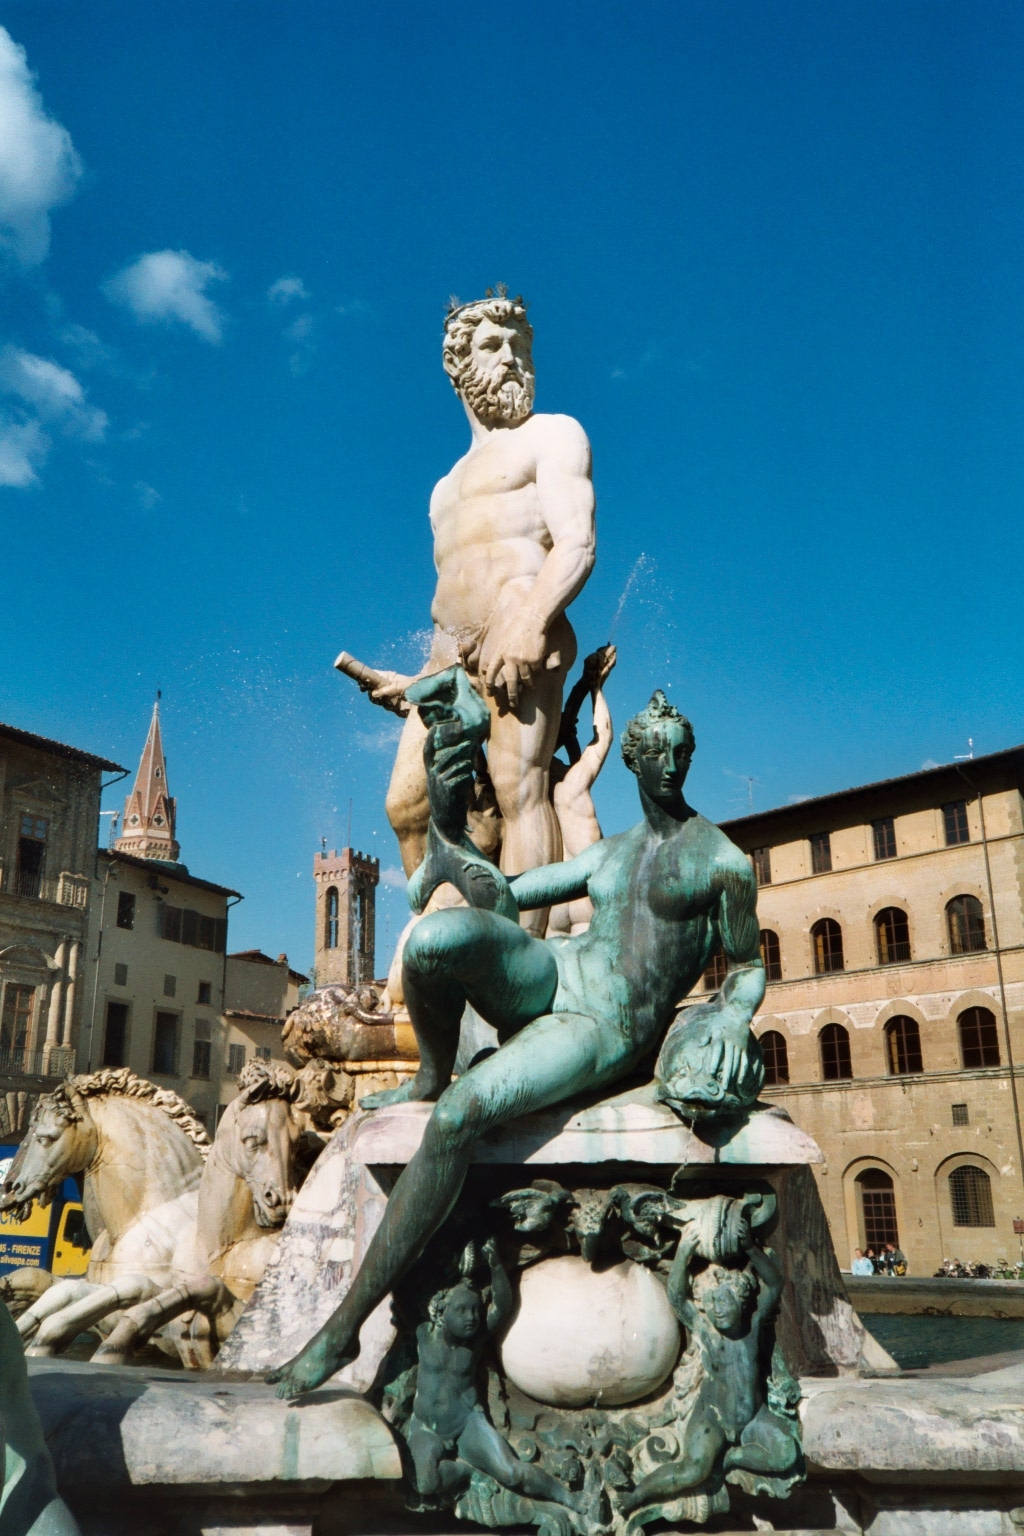 The Fountain of Neptune is a fountain in Florence, Italy, situated on the Piazza della Signoria